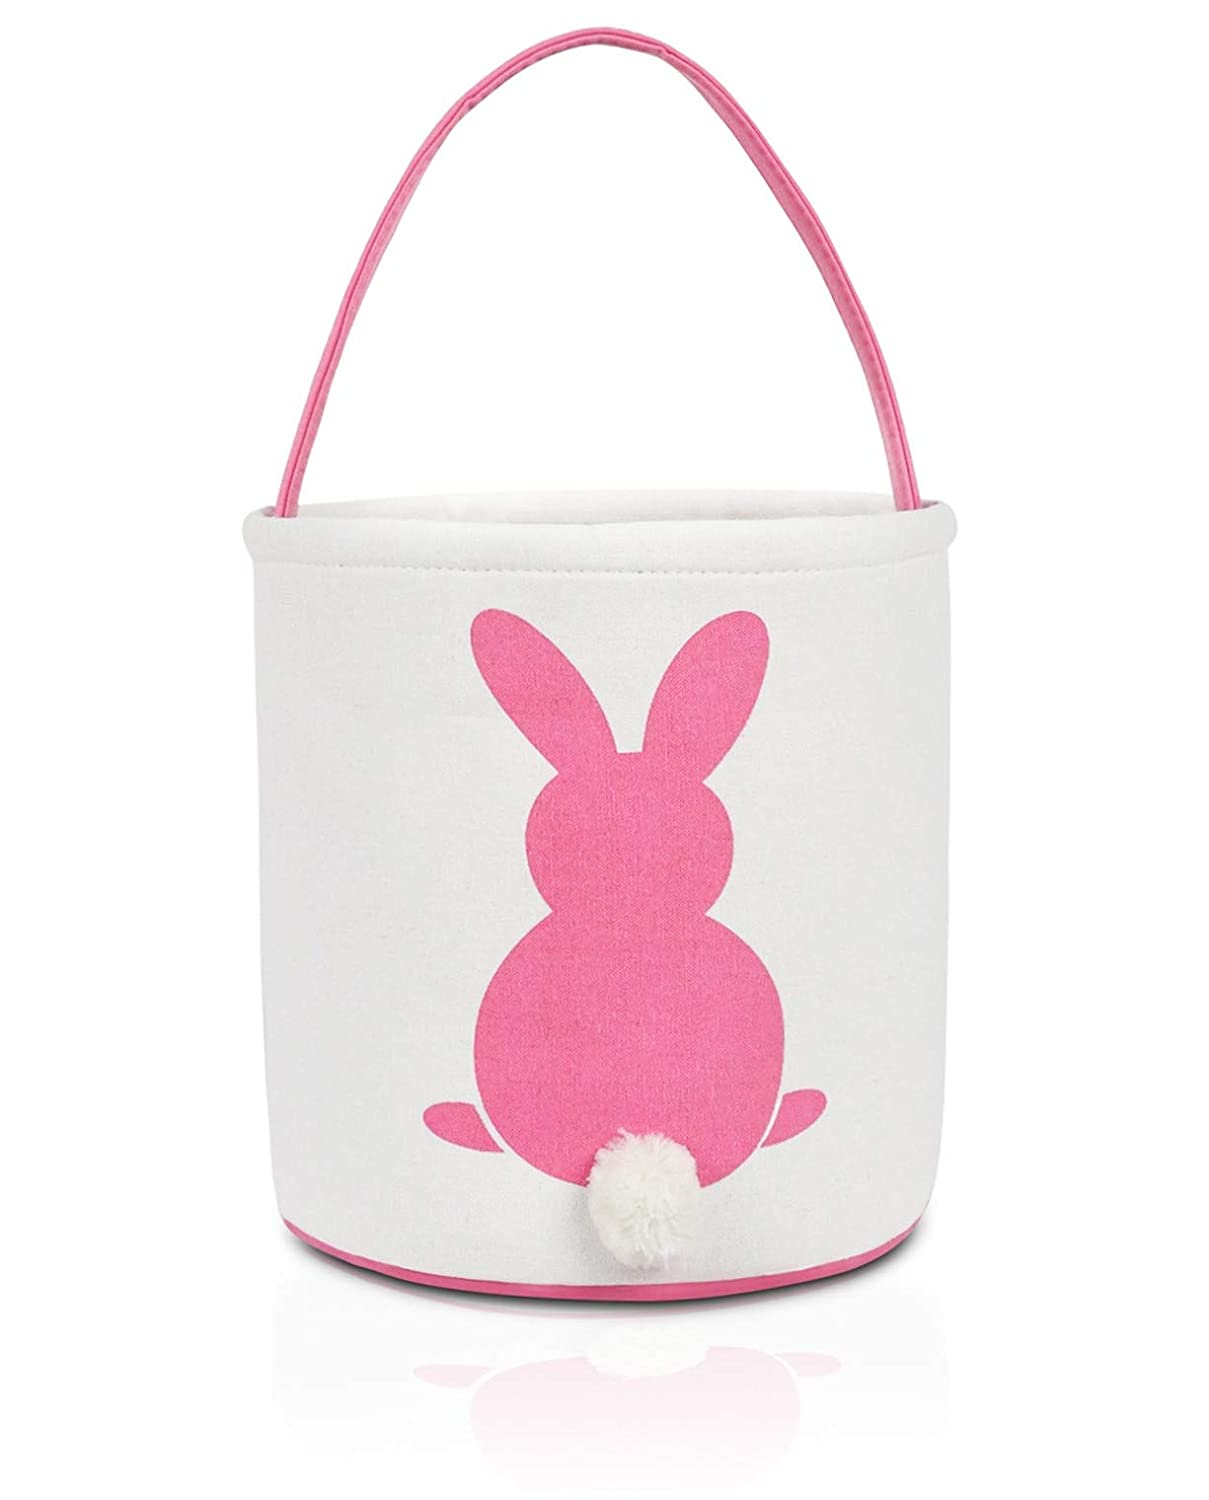 unisex MONOBLANKS Easter Bunny Basket Bags Kids Carry Luxury goods for Cotton Canvas